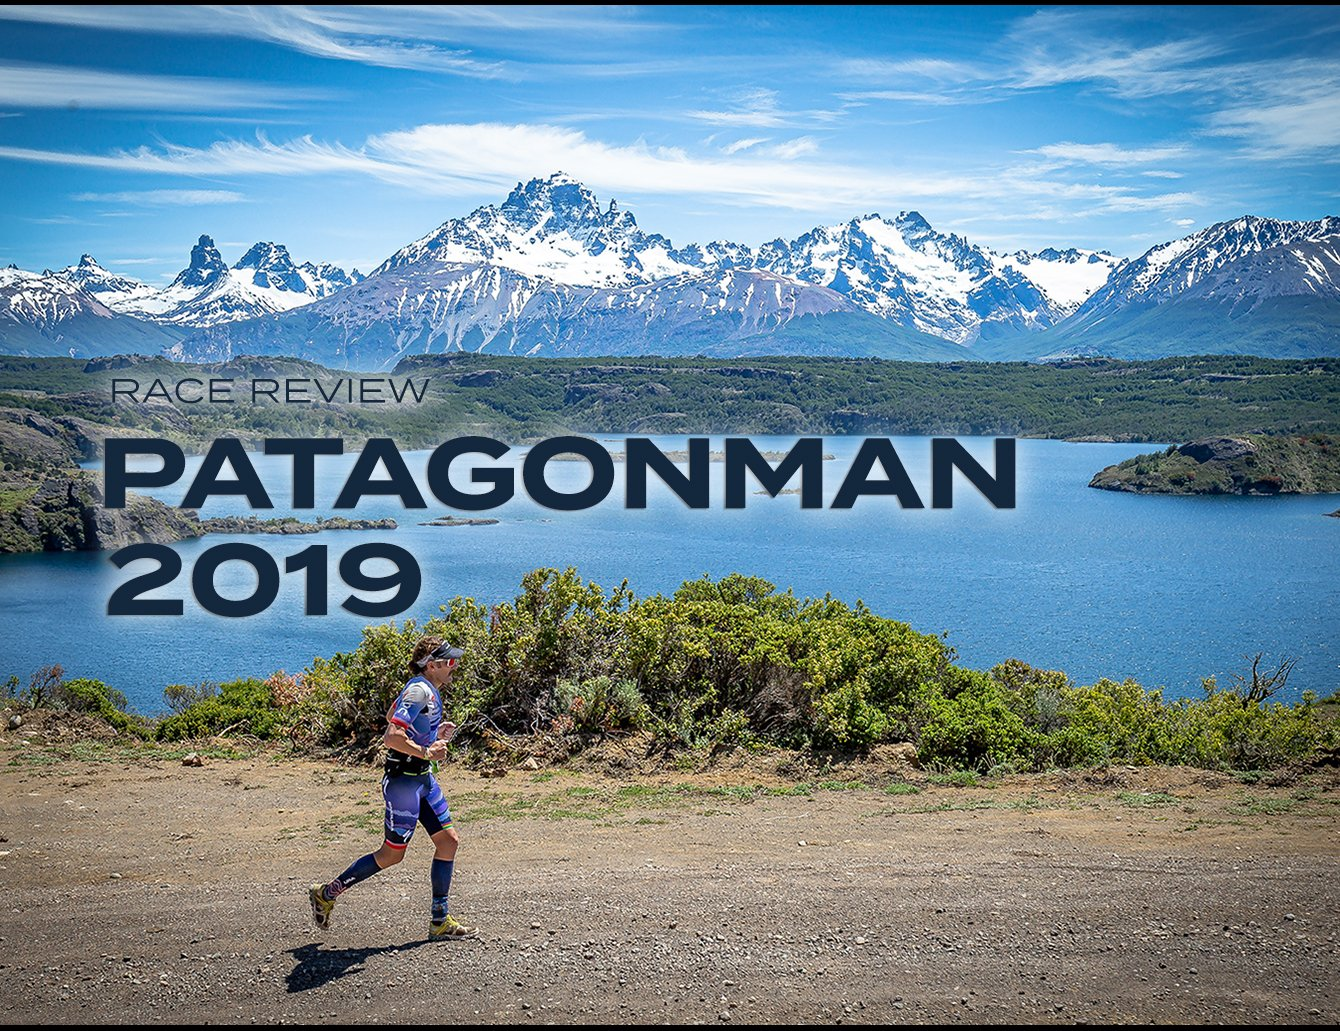 Tim Don & Flora Colledge Win Patagonman 2019